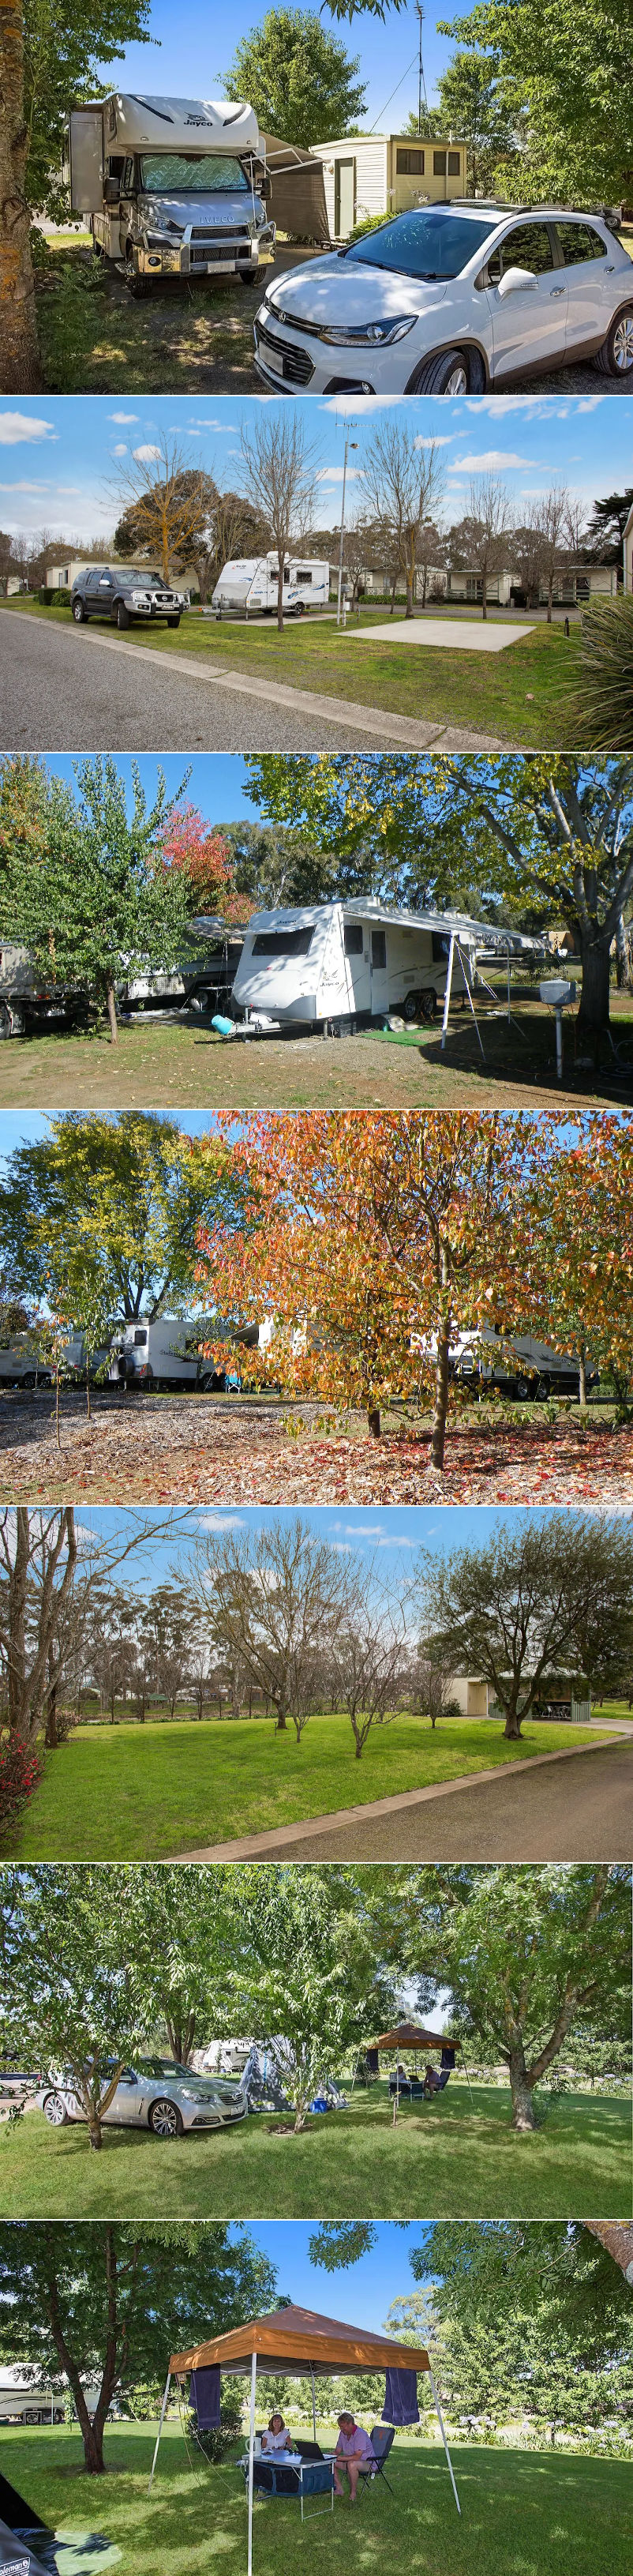 Lake Hamilton Motor Village & Caravan Park - Sites